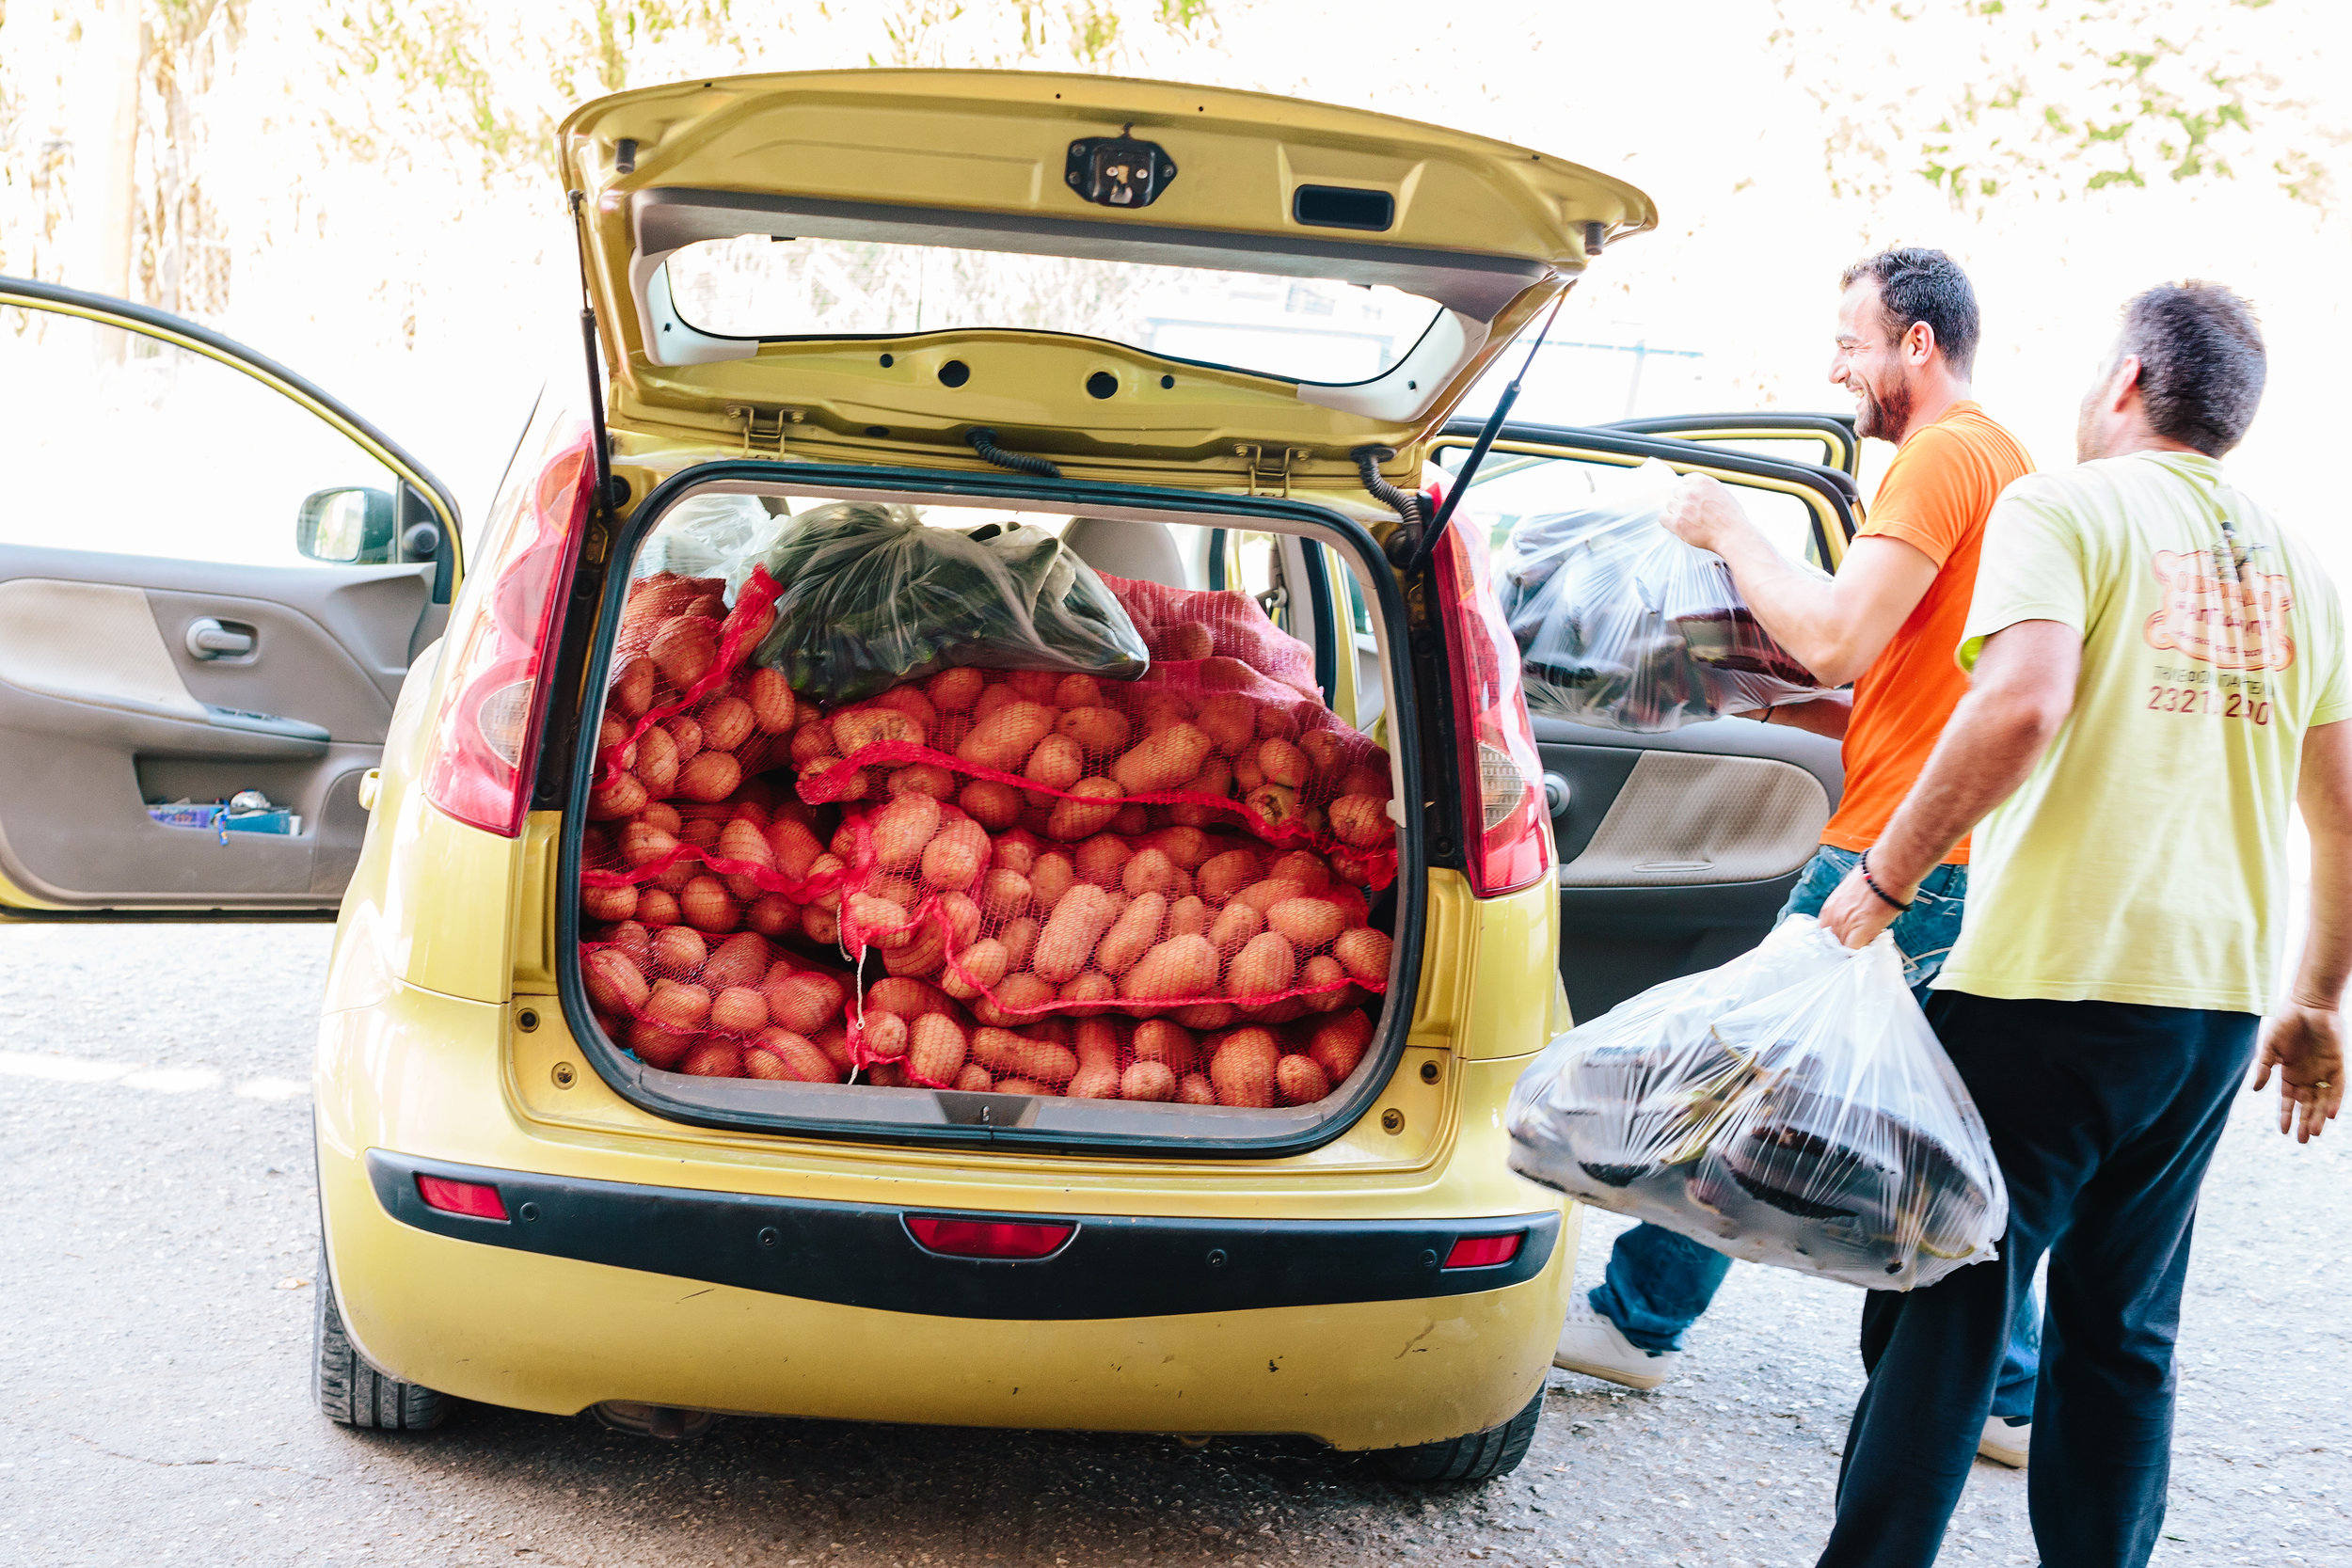 Getting my daily fill of distribution items. Photo by Shannon Ashton